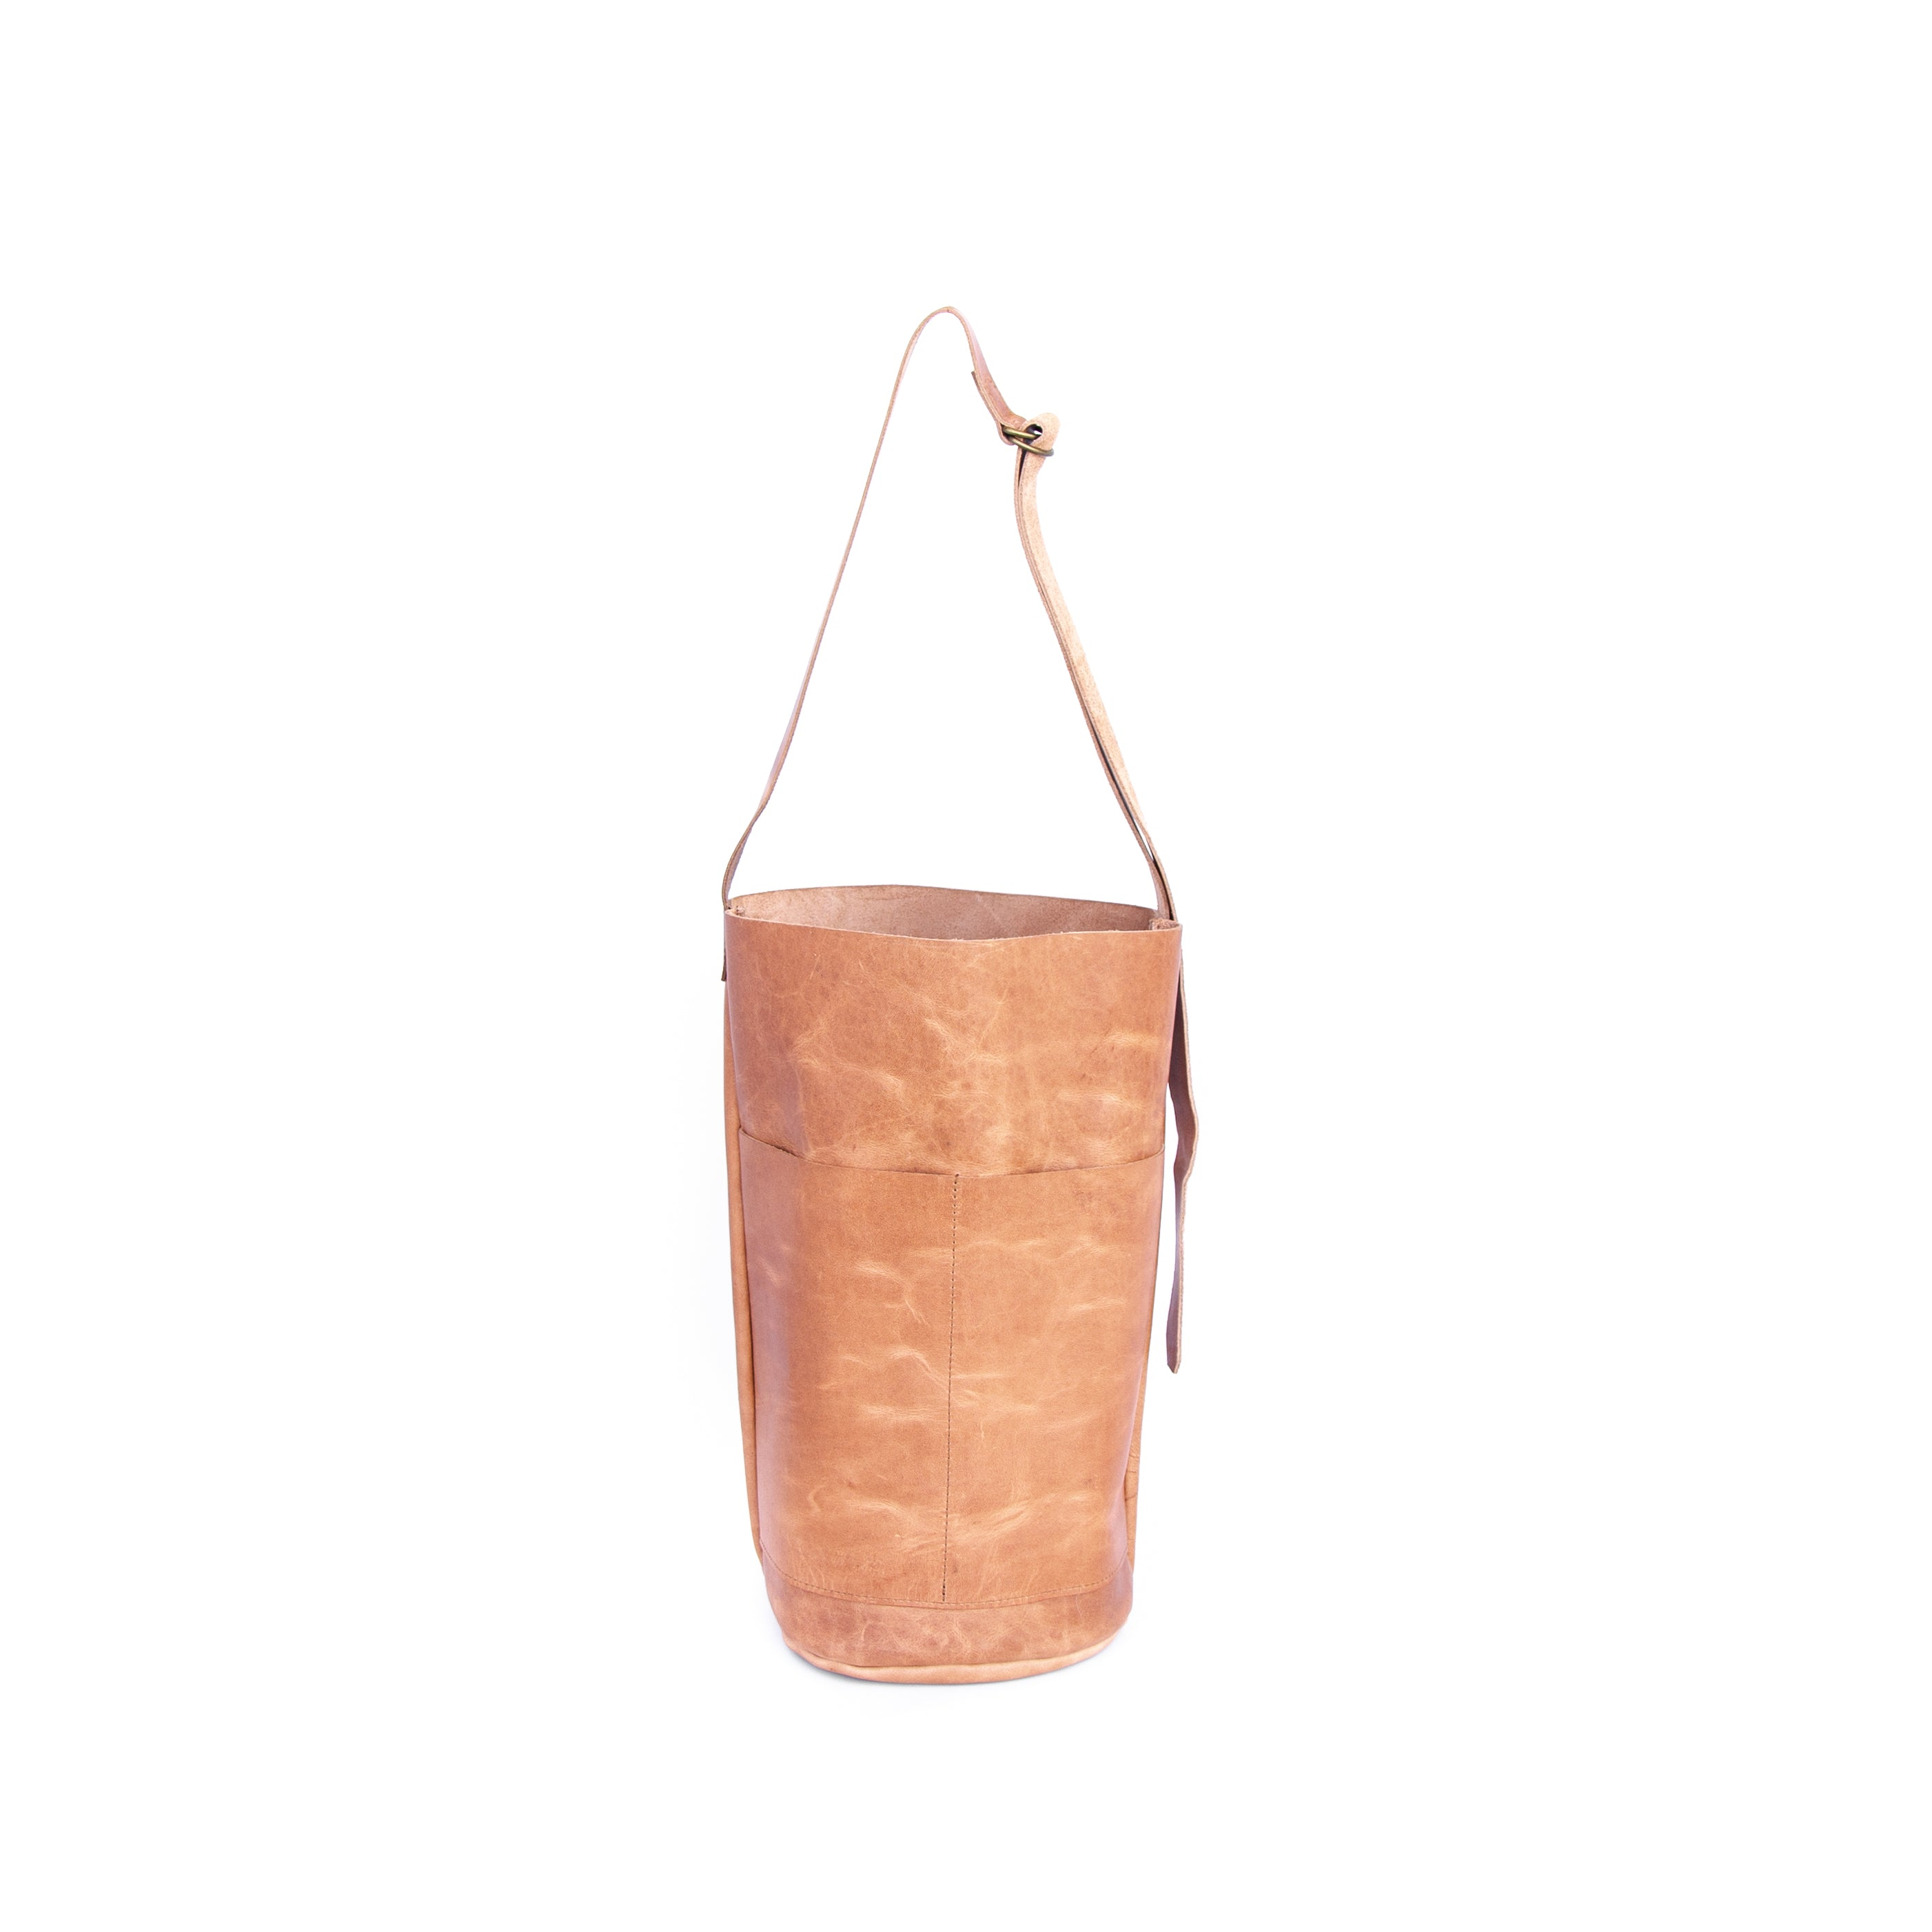 The Back Pack in Tan Leather - handcrafted by Market Canvas Leather in Tofino, BC, Canada